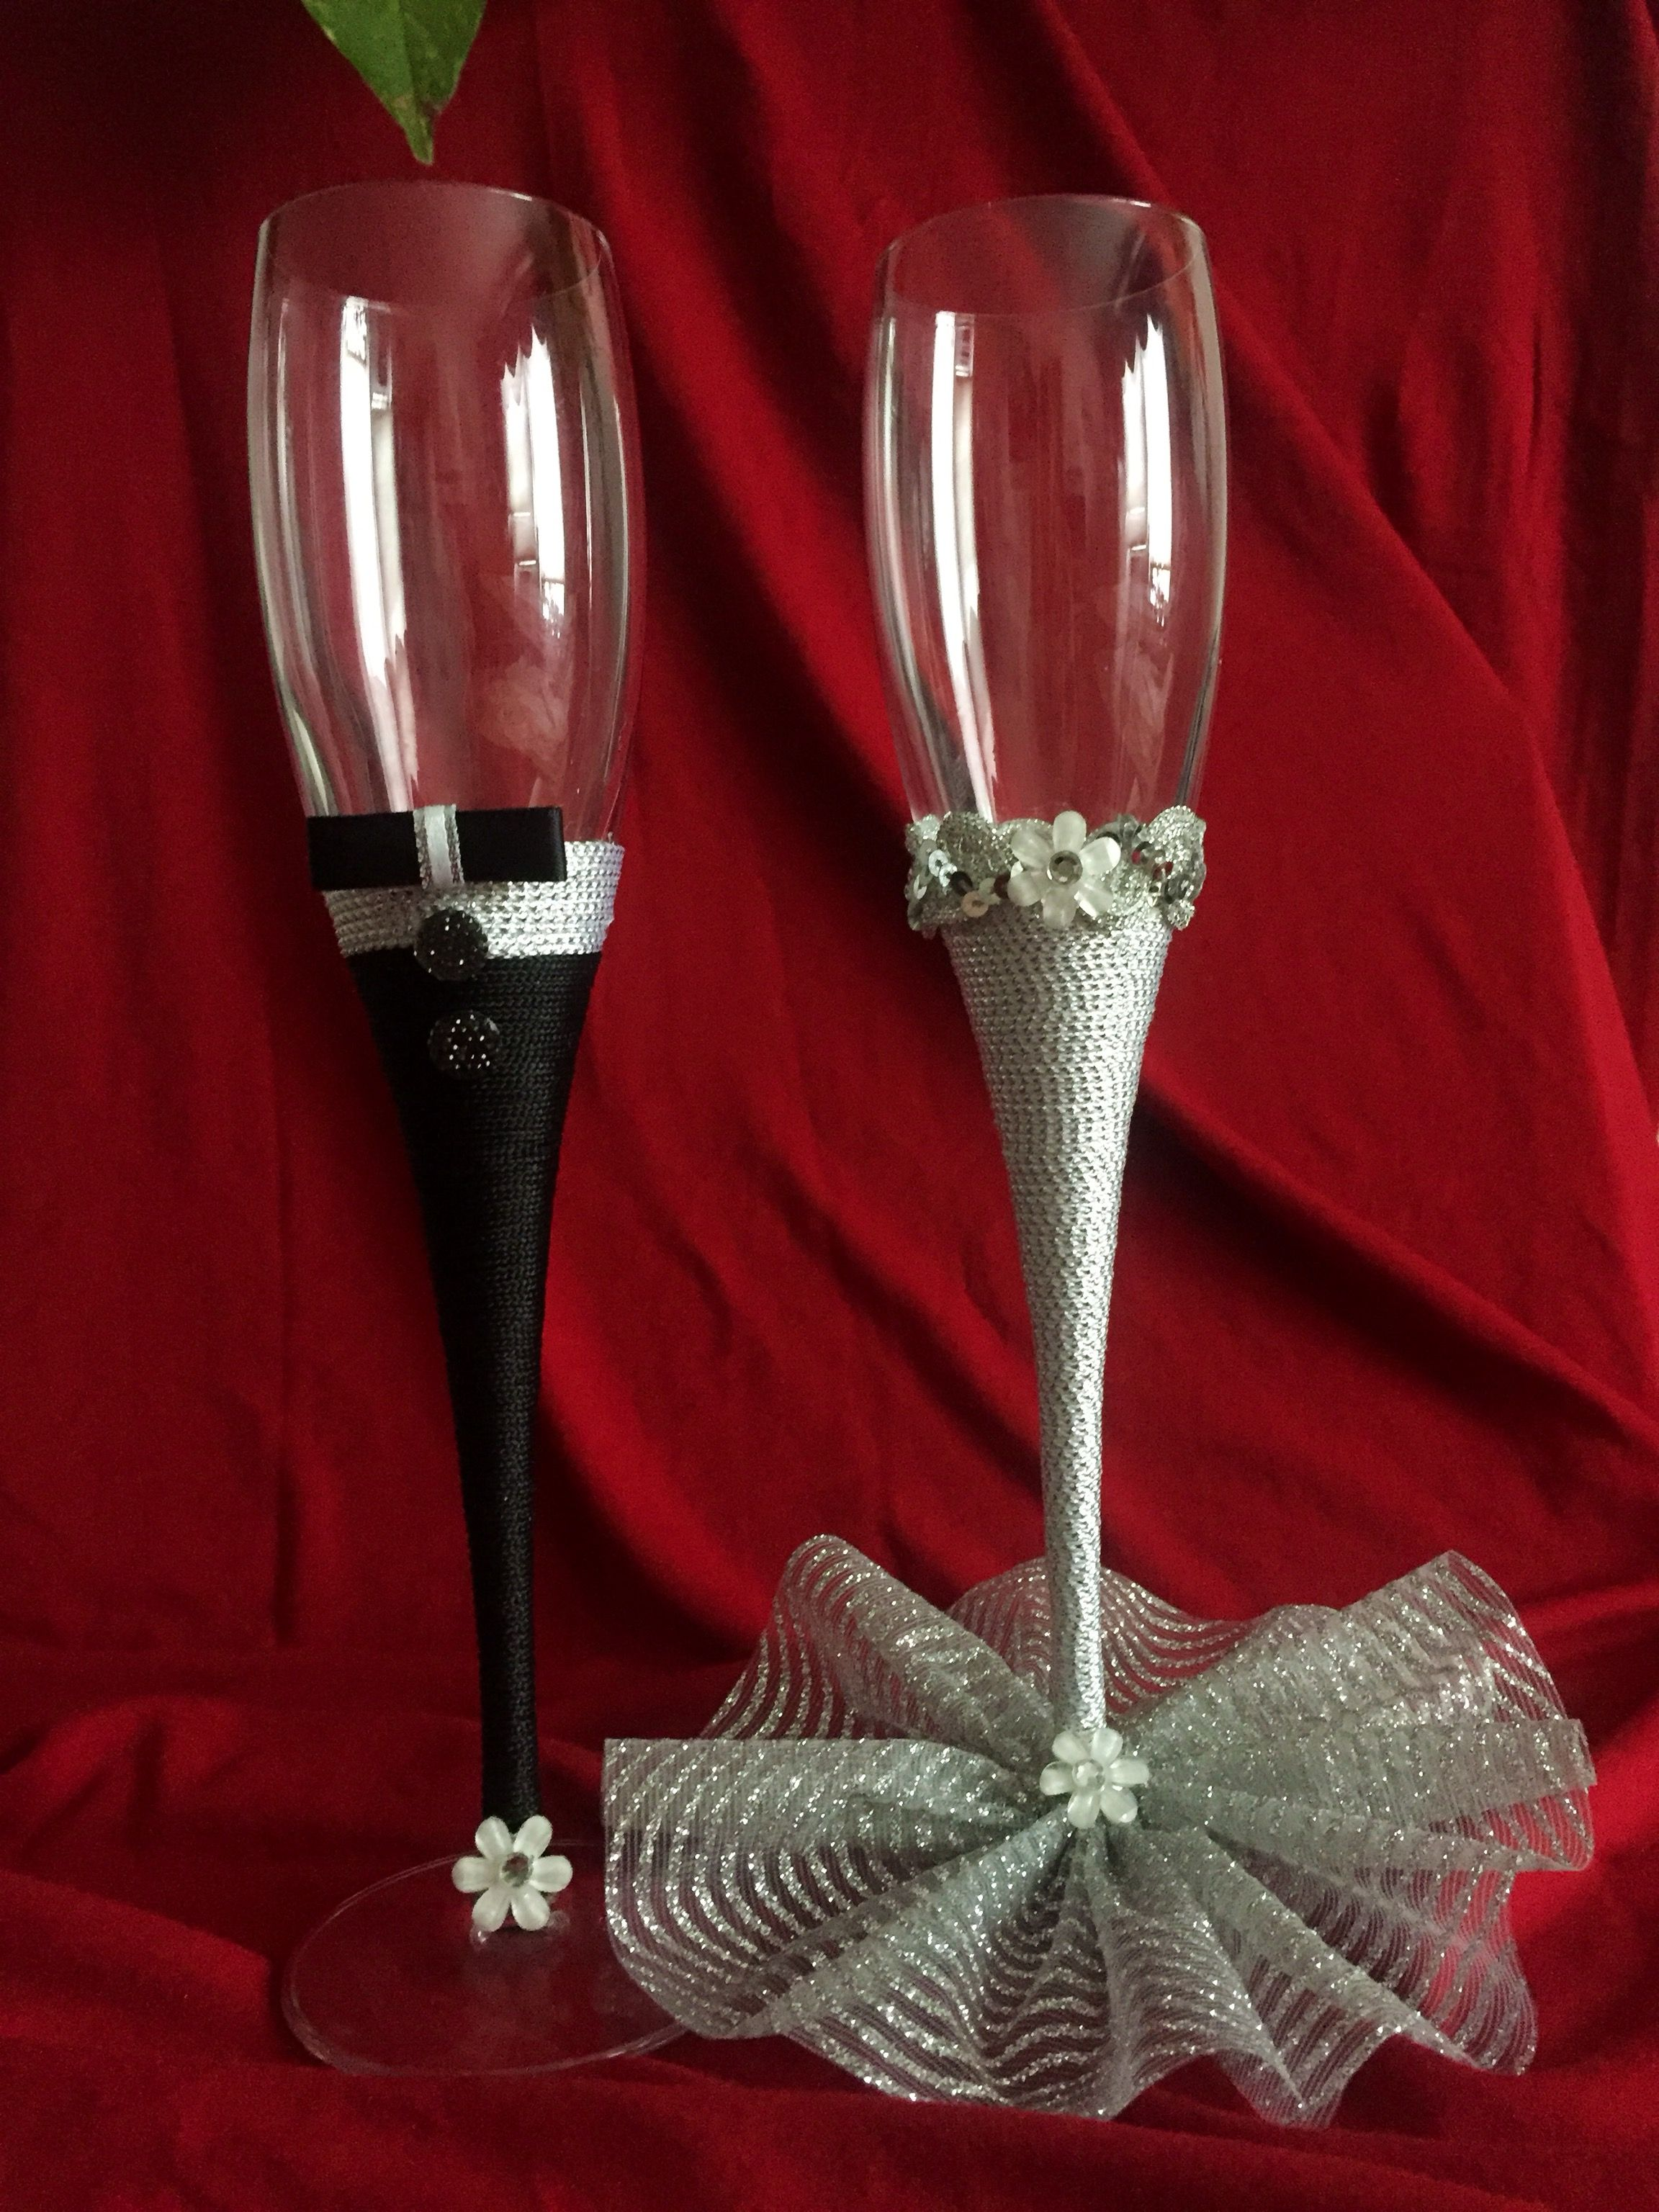 Wedding Champagne Flutes Bride And Groom Toasting Glasses Wedding Gift Bridal Shower Decorated Wine Glasses Champagne Glasses Decorated Wedding Wine Glasses